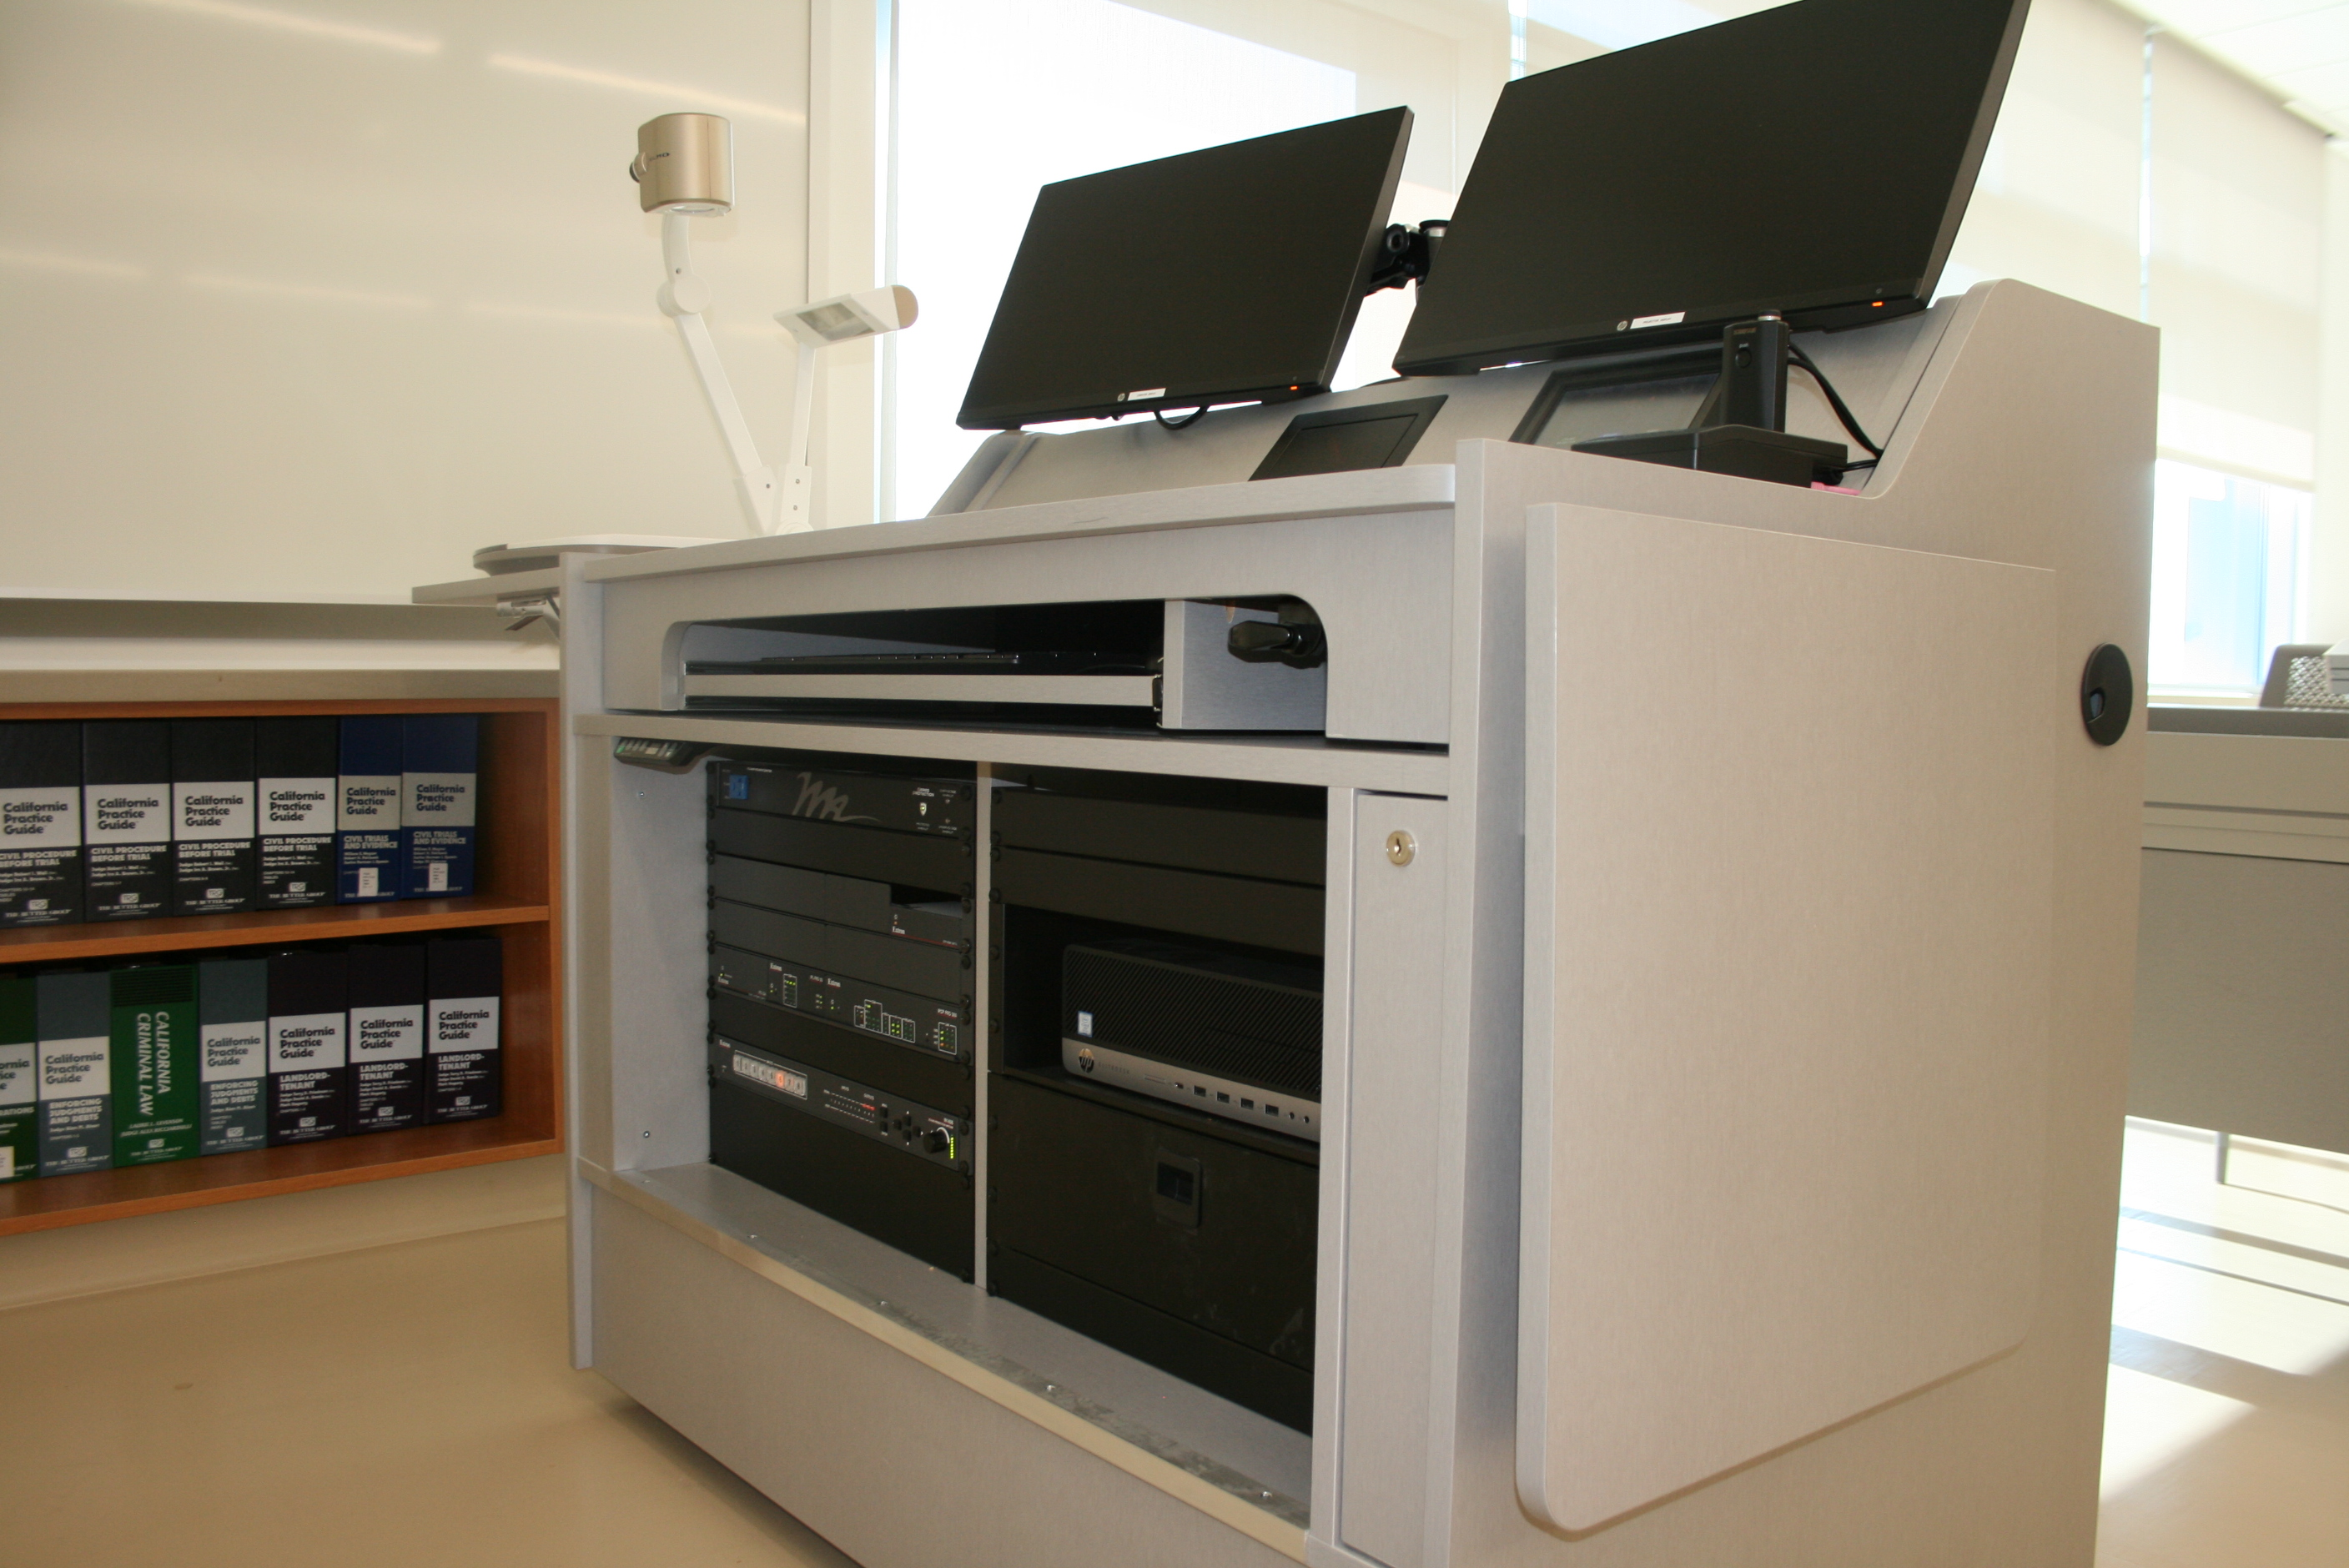 ADA-compliant teaching station with AV system components